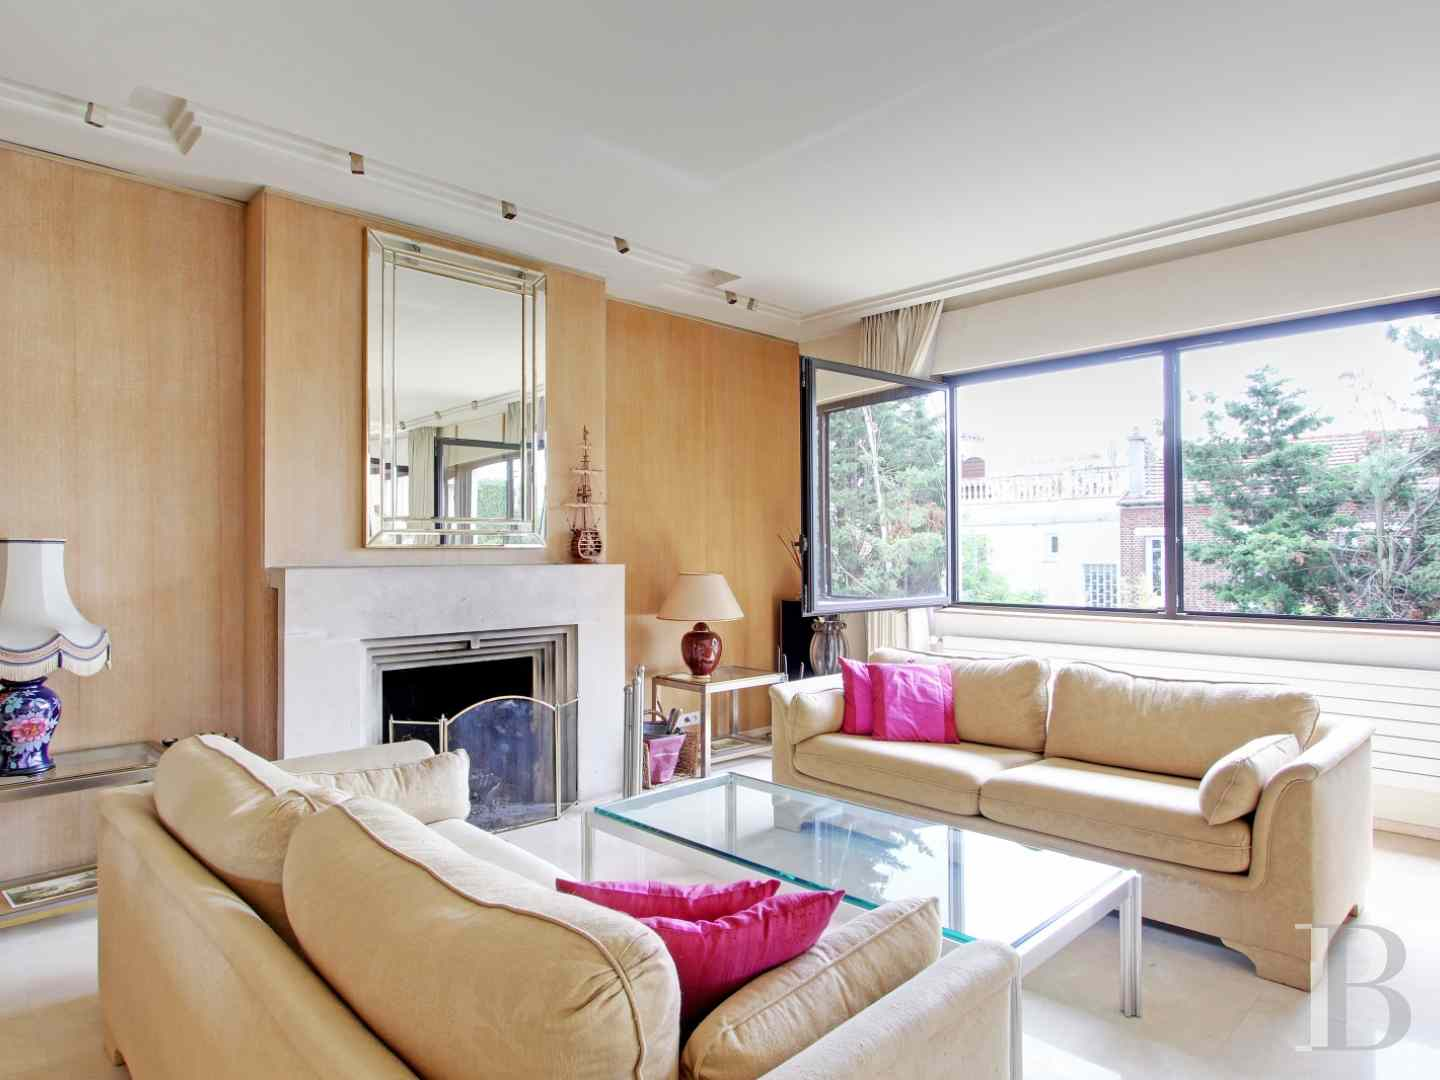 property for sale France paris residences mansion - 6 zoom